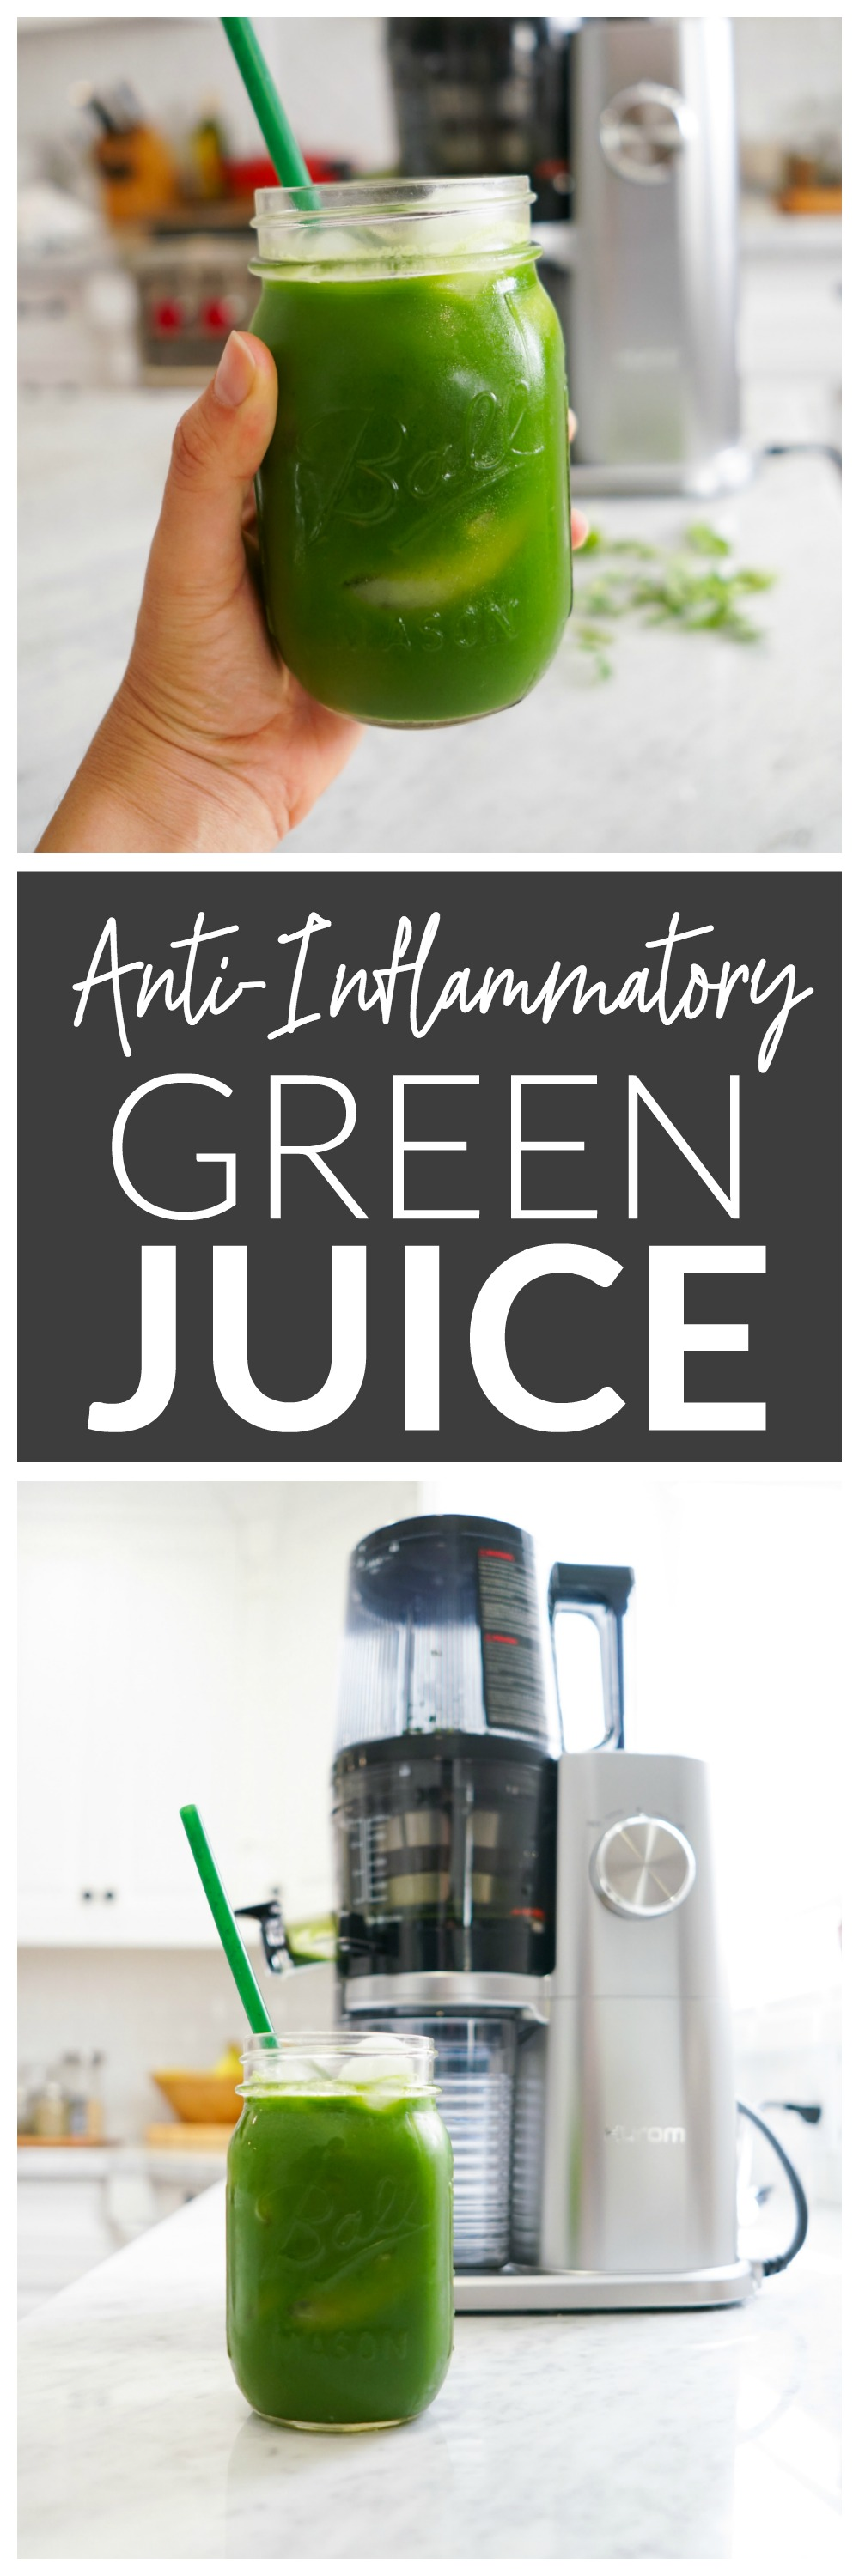 Anti-Inflammatory Green Juice made with pineapple, kale, spinach, arugula, ginger, turmeric, and black pepper.